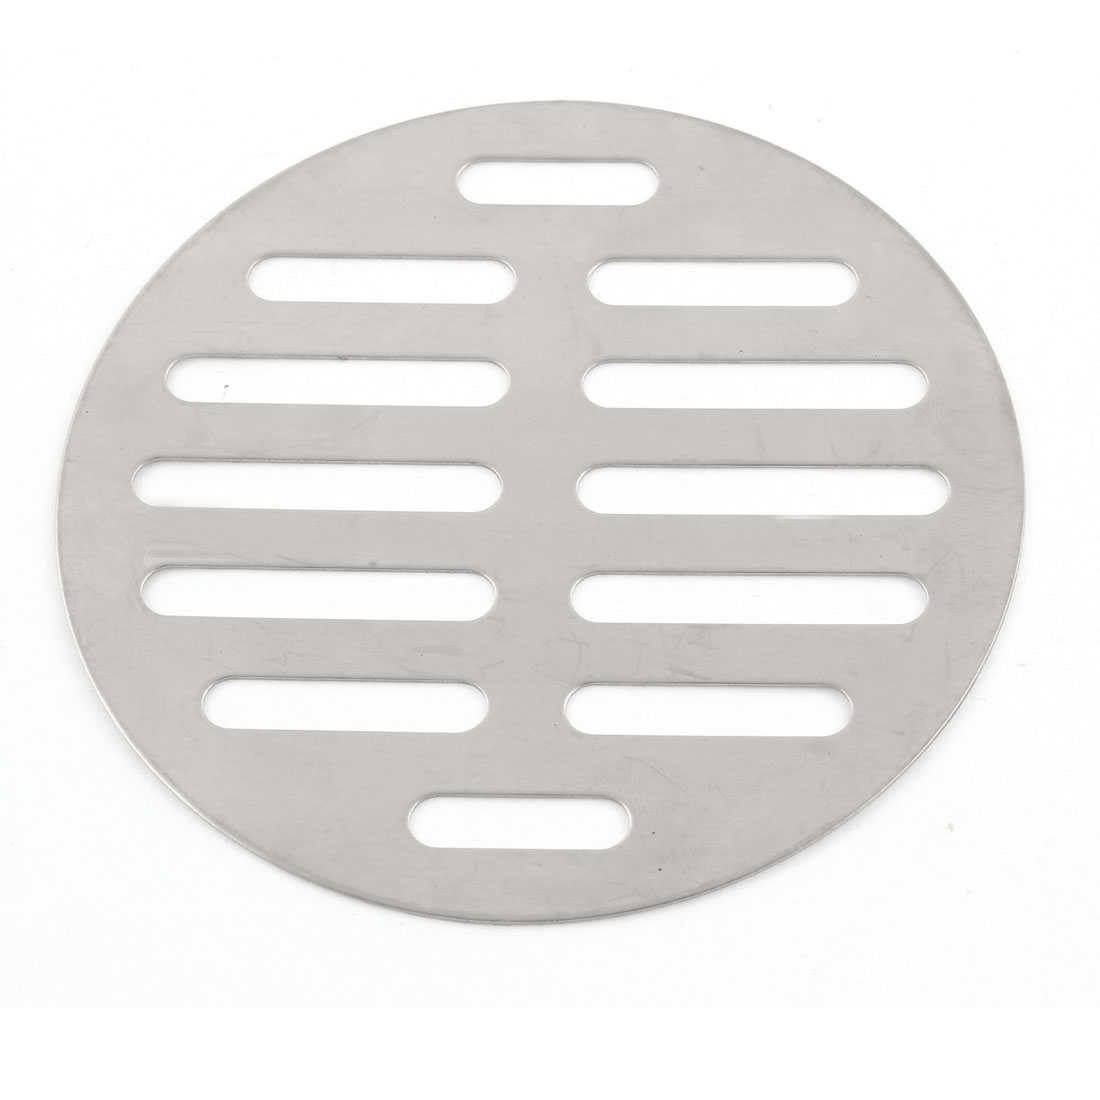 4 Inch Stainless Steel Floor Strainer Drain Cover Kitchen